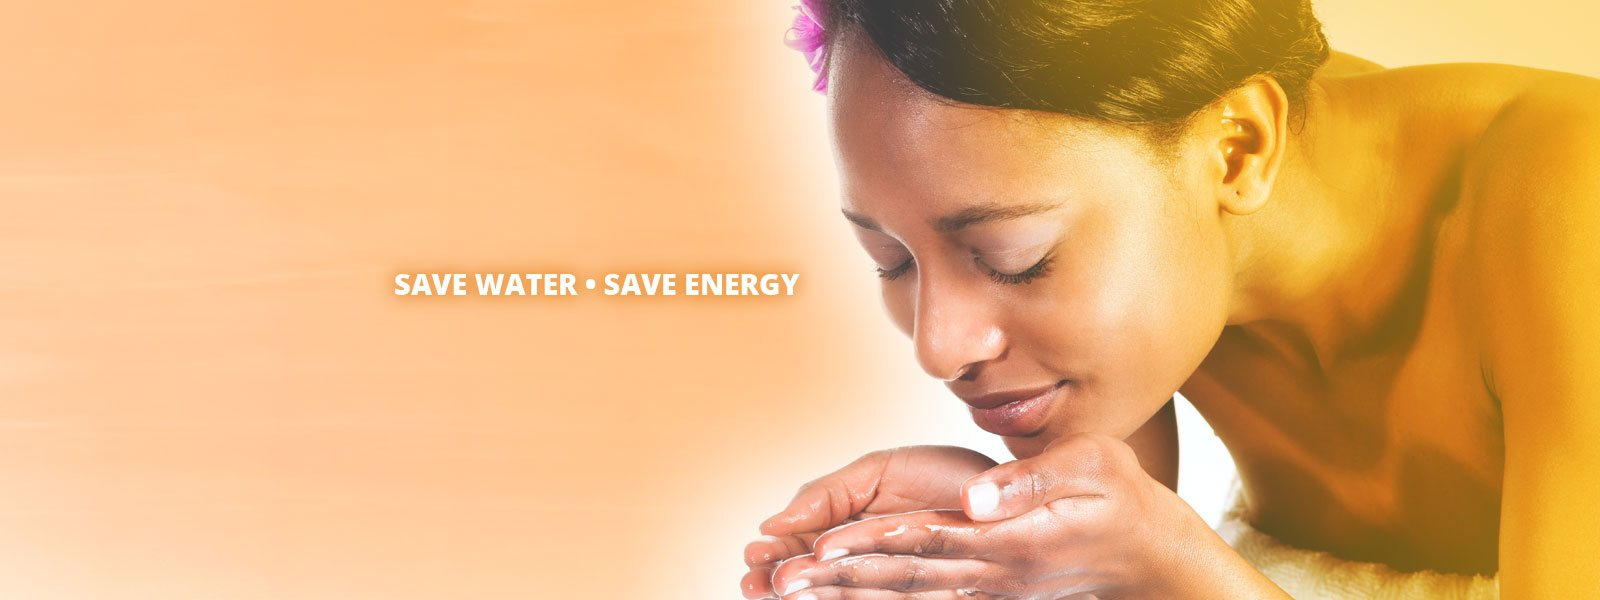 Save Water • Save Energy